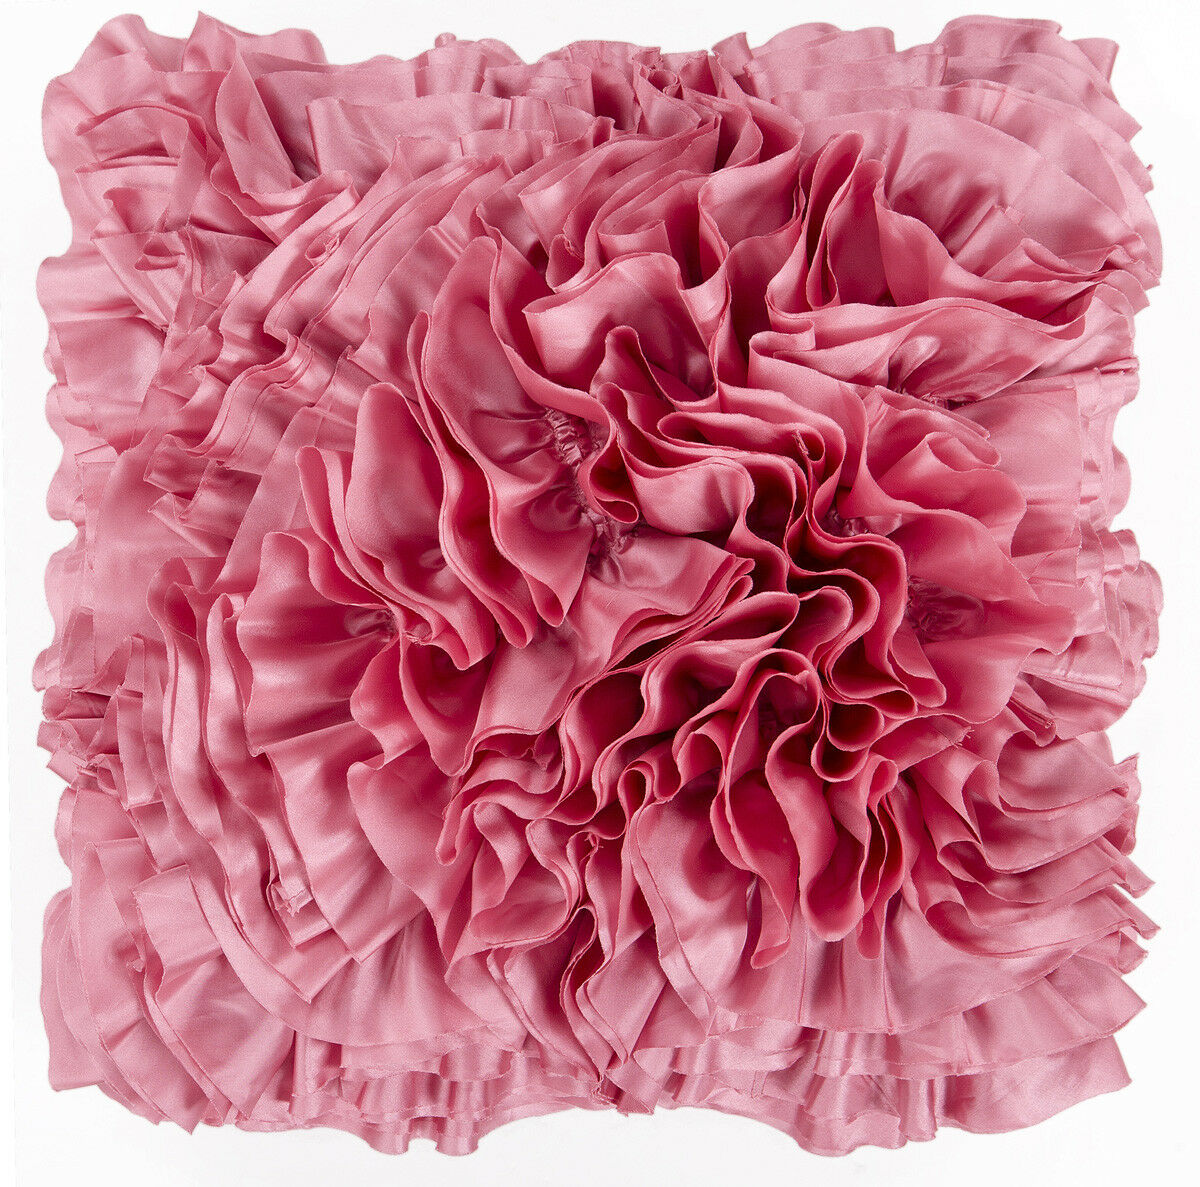 Surya Pinks Ruffles Frills Textured Romantic Area Rug Solid BB034